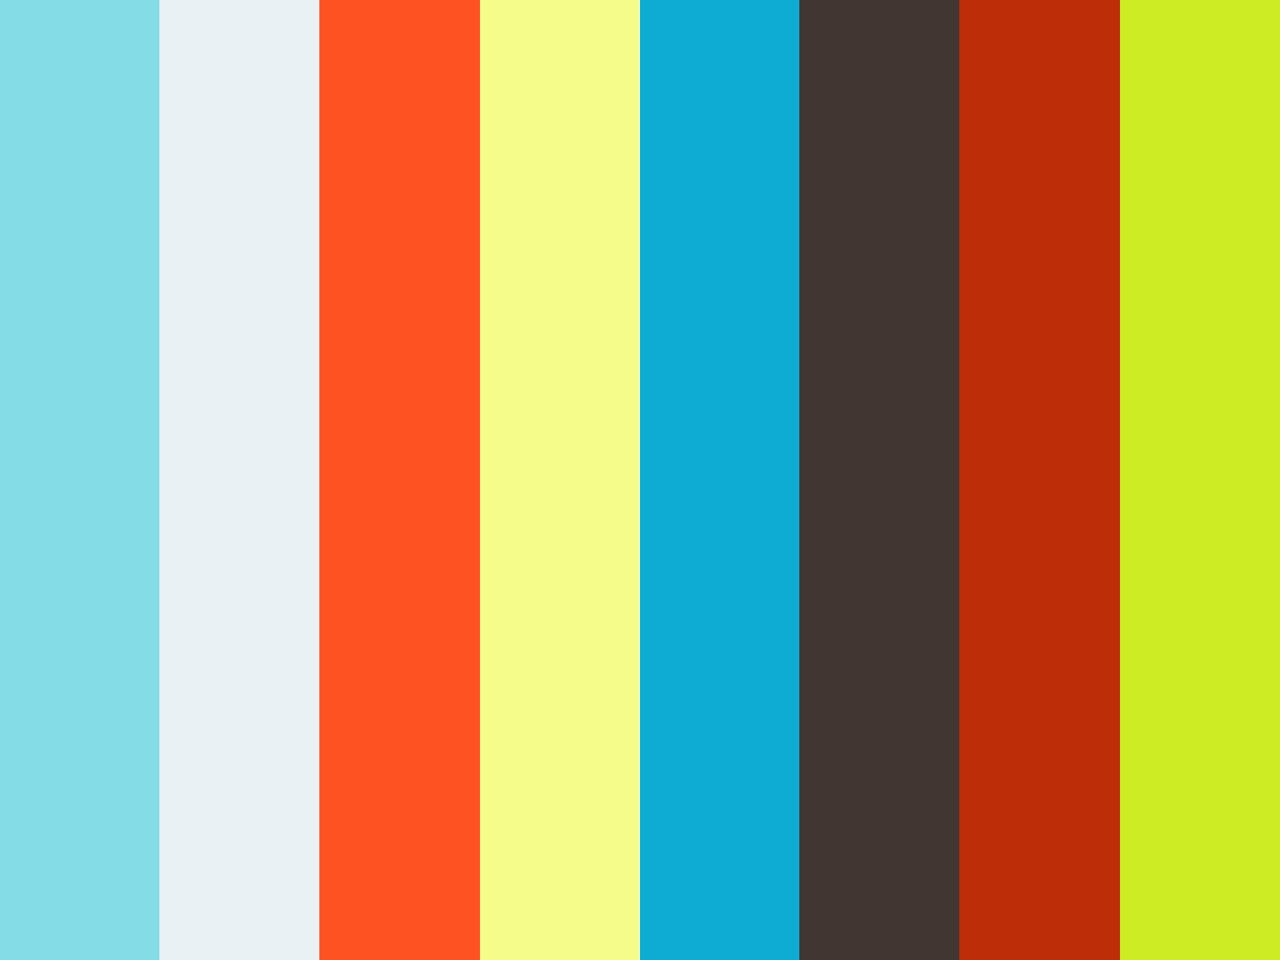 Garage door company Panama City, FL $10,000.00 Door On the Water front View BWGDS